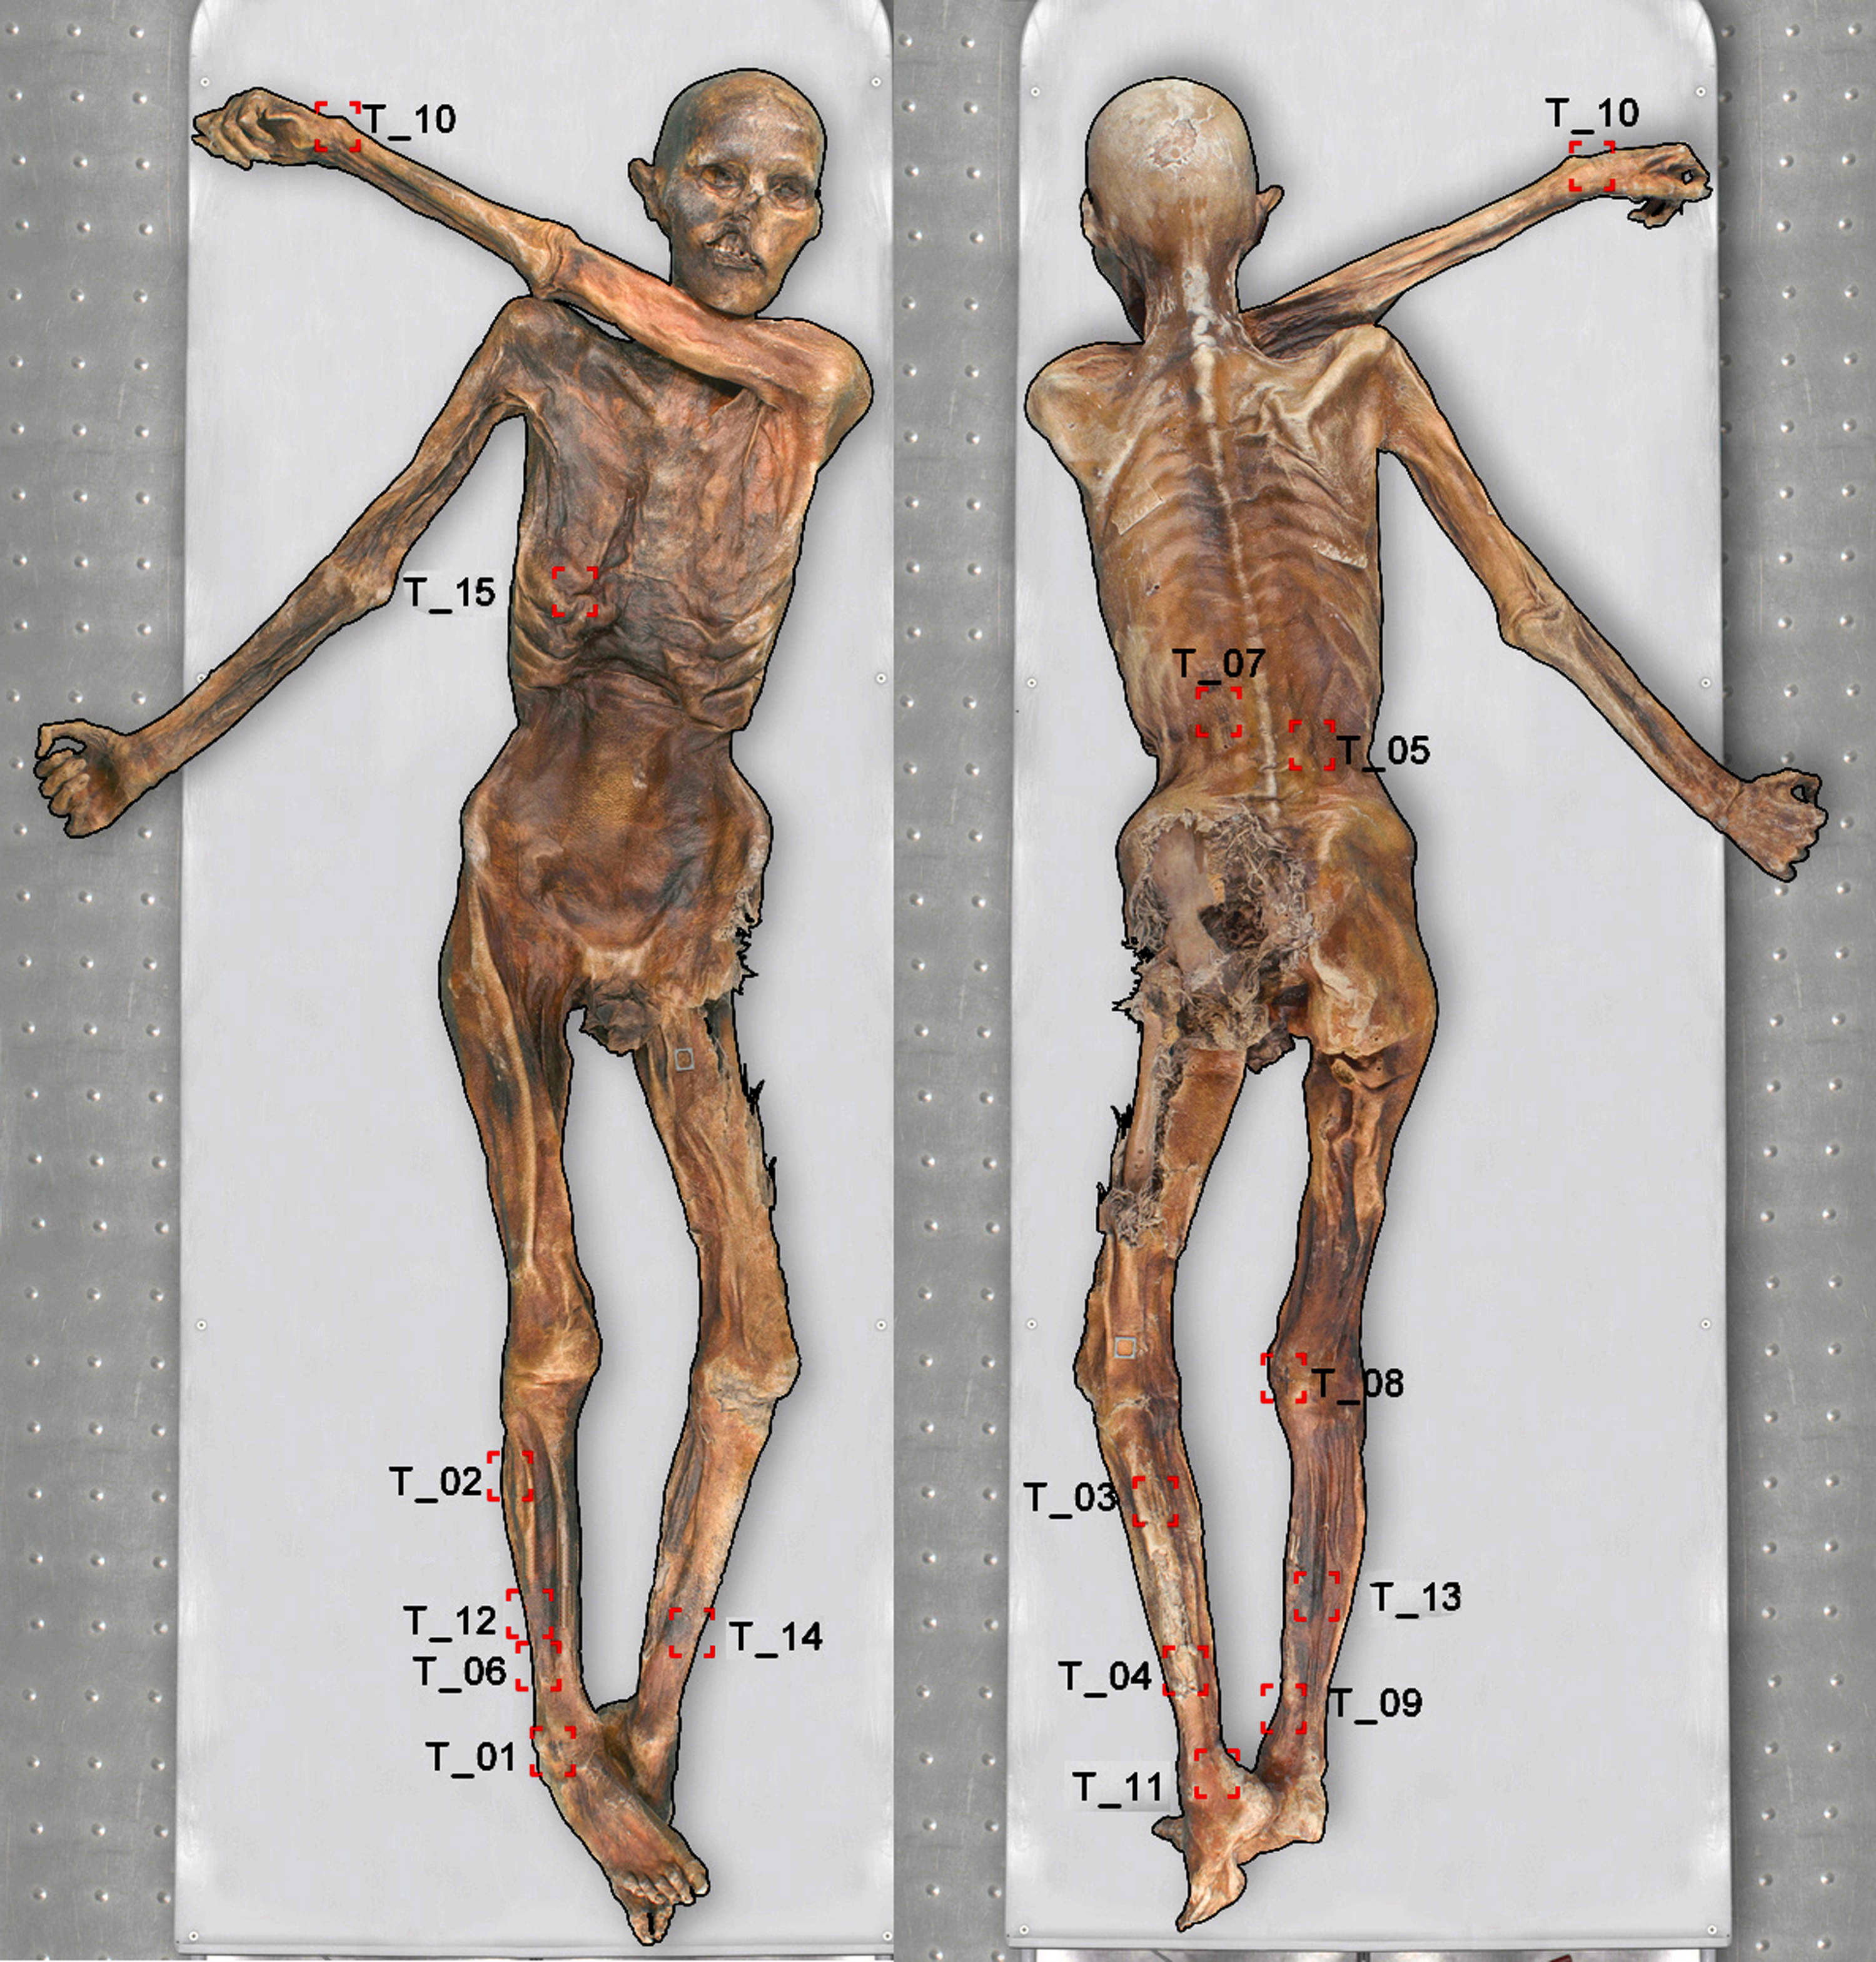 New tattoos discovered on Oetzi mummy